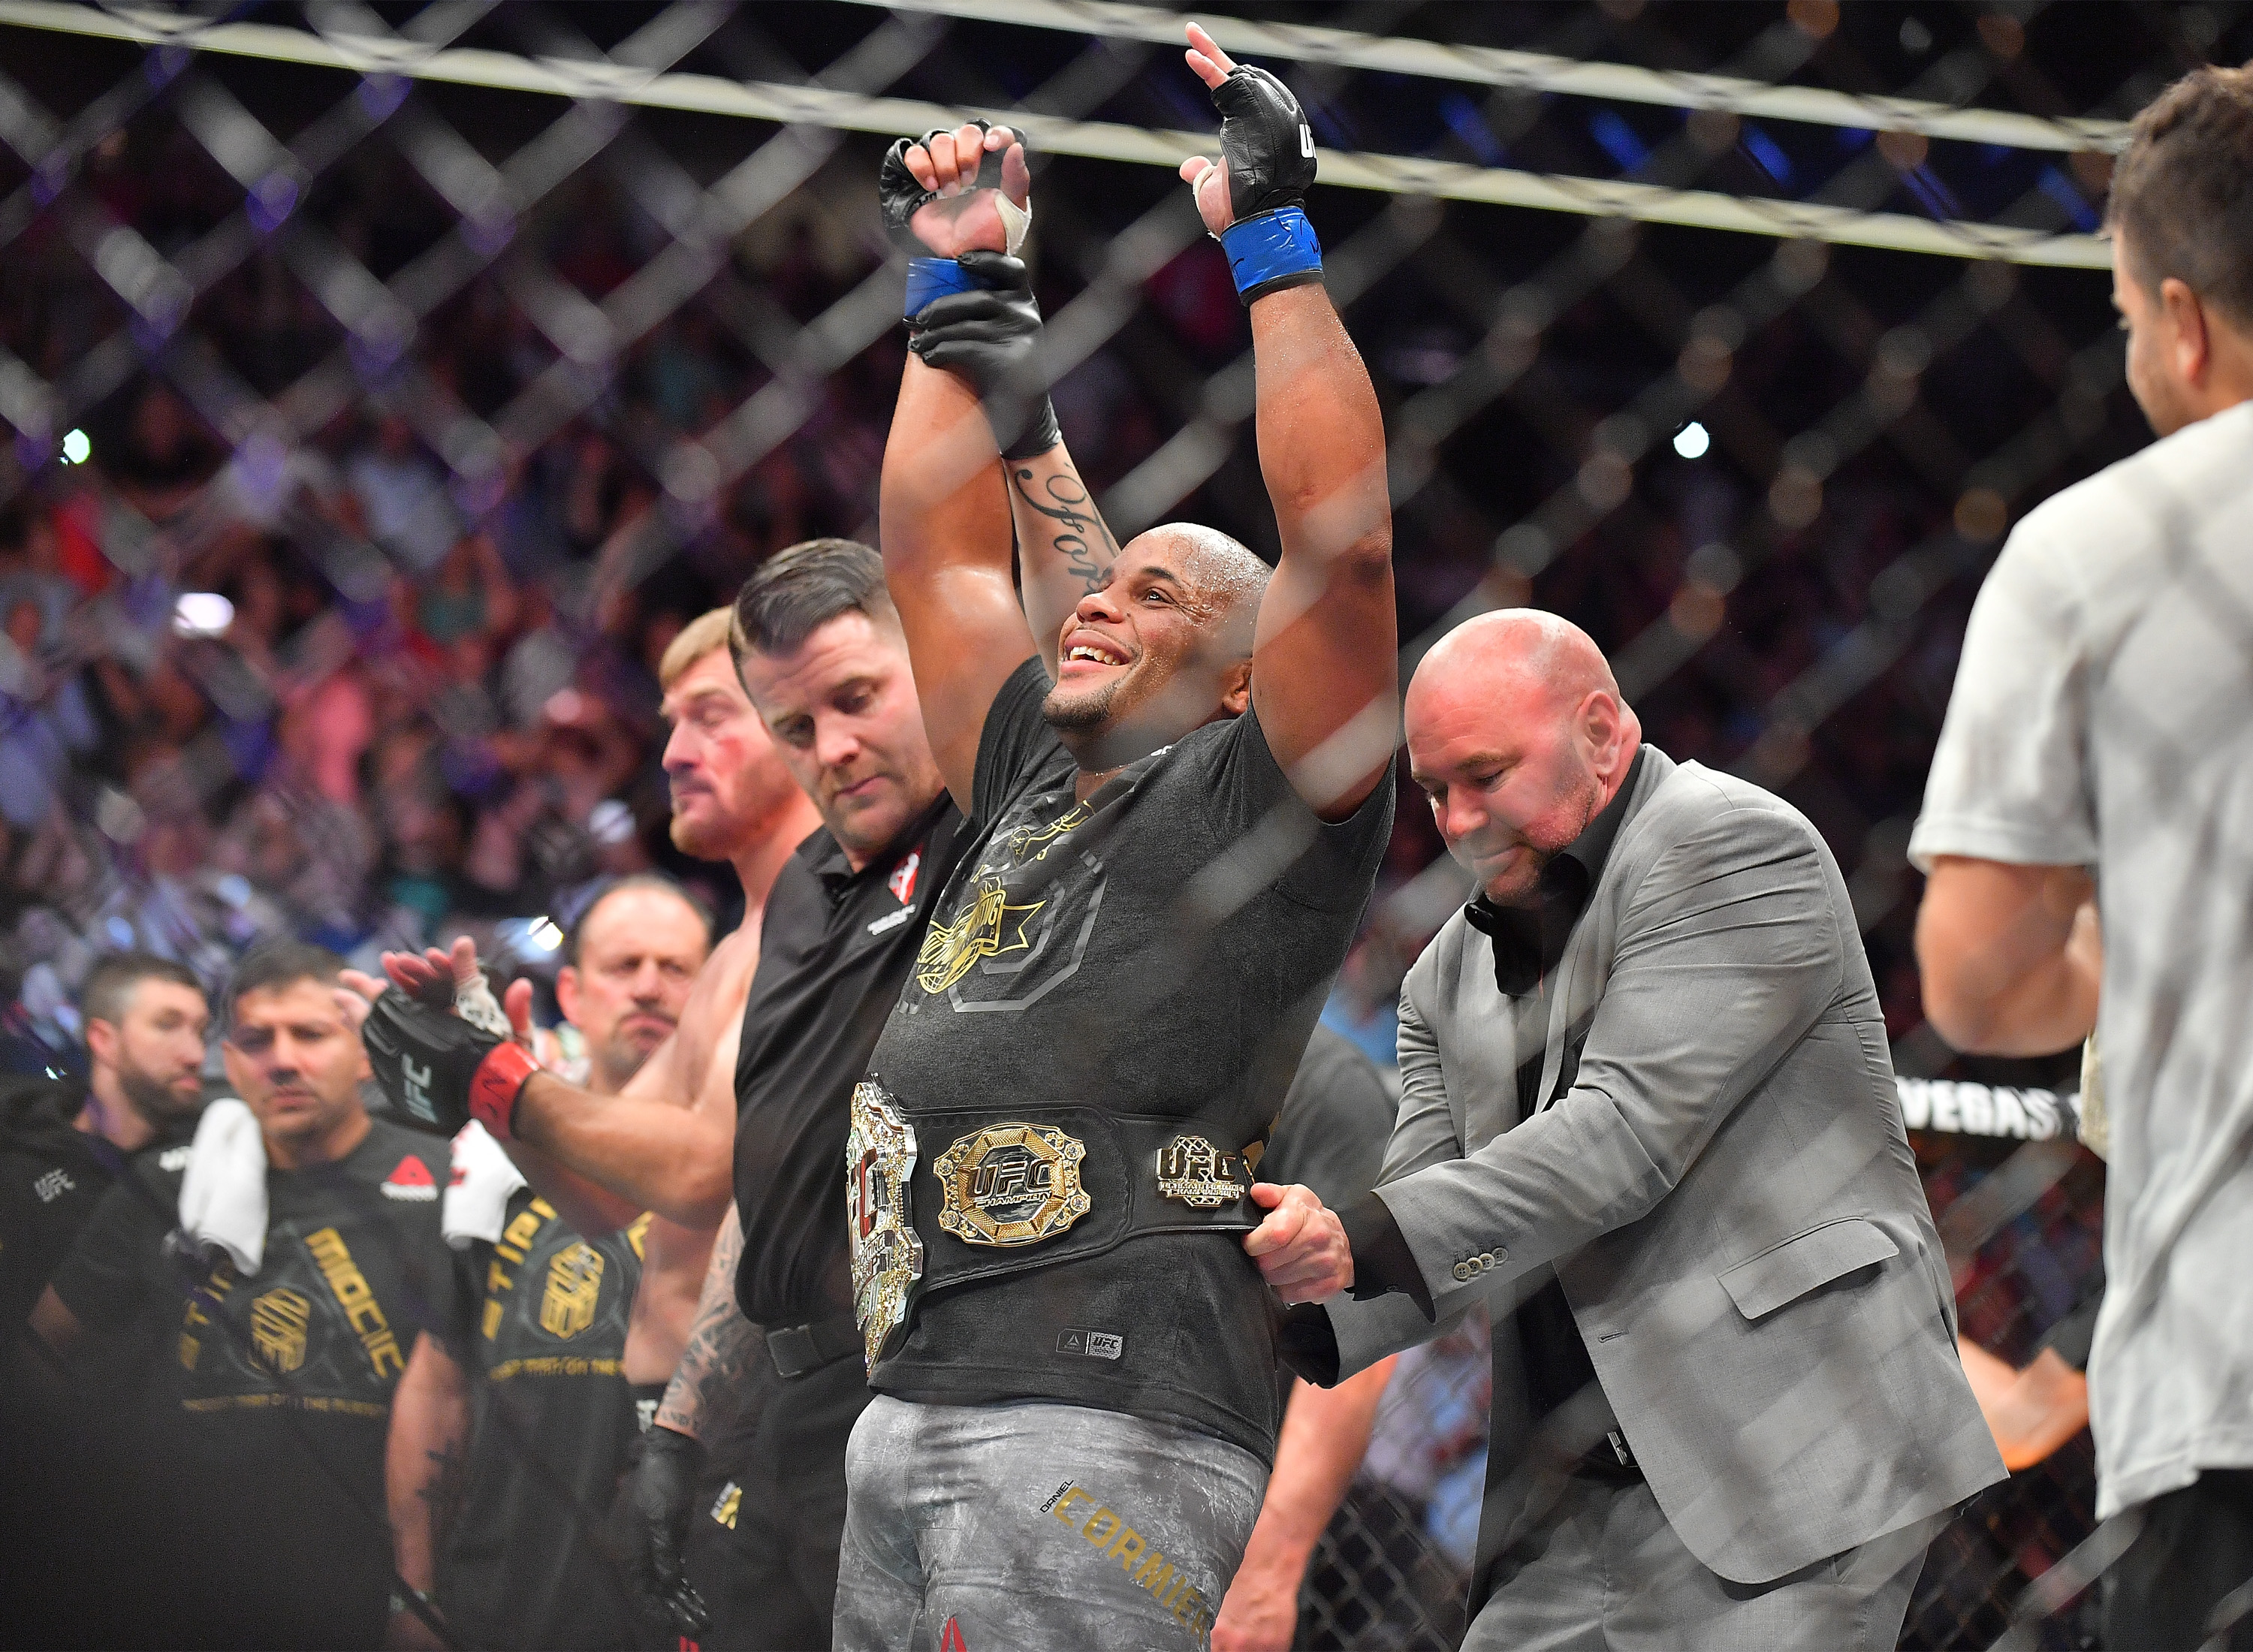 LAS VEGAS, NV - JULY 07: UFC President Dana White (R) places the championship belt around the waist of Daniel Cormier after he defeated Stipe Miocic in their heavyweight championship fight at T-Mobile Arena on July 7, 2018 in Las Vegas, Nevada. Cormier won by first round knockout. (Photo by